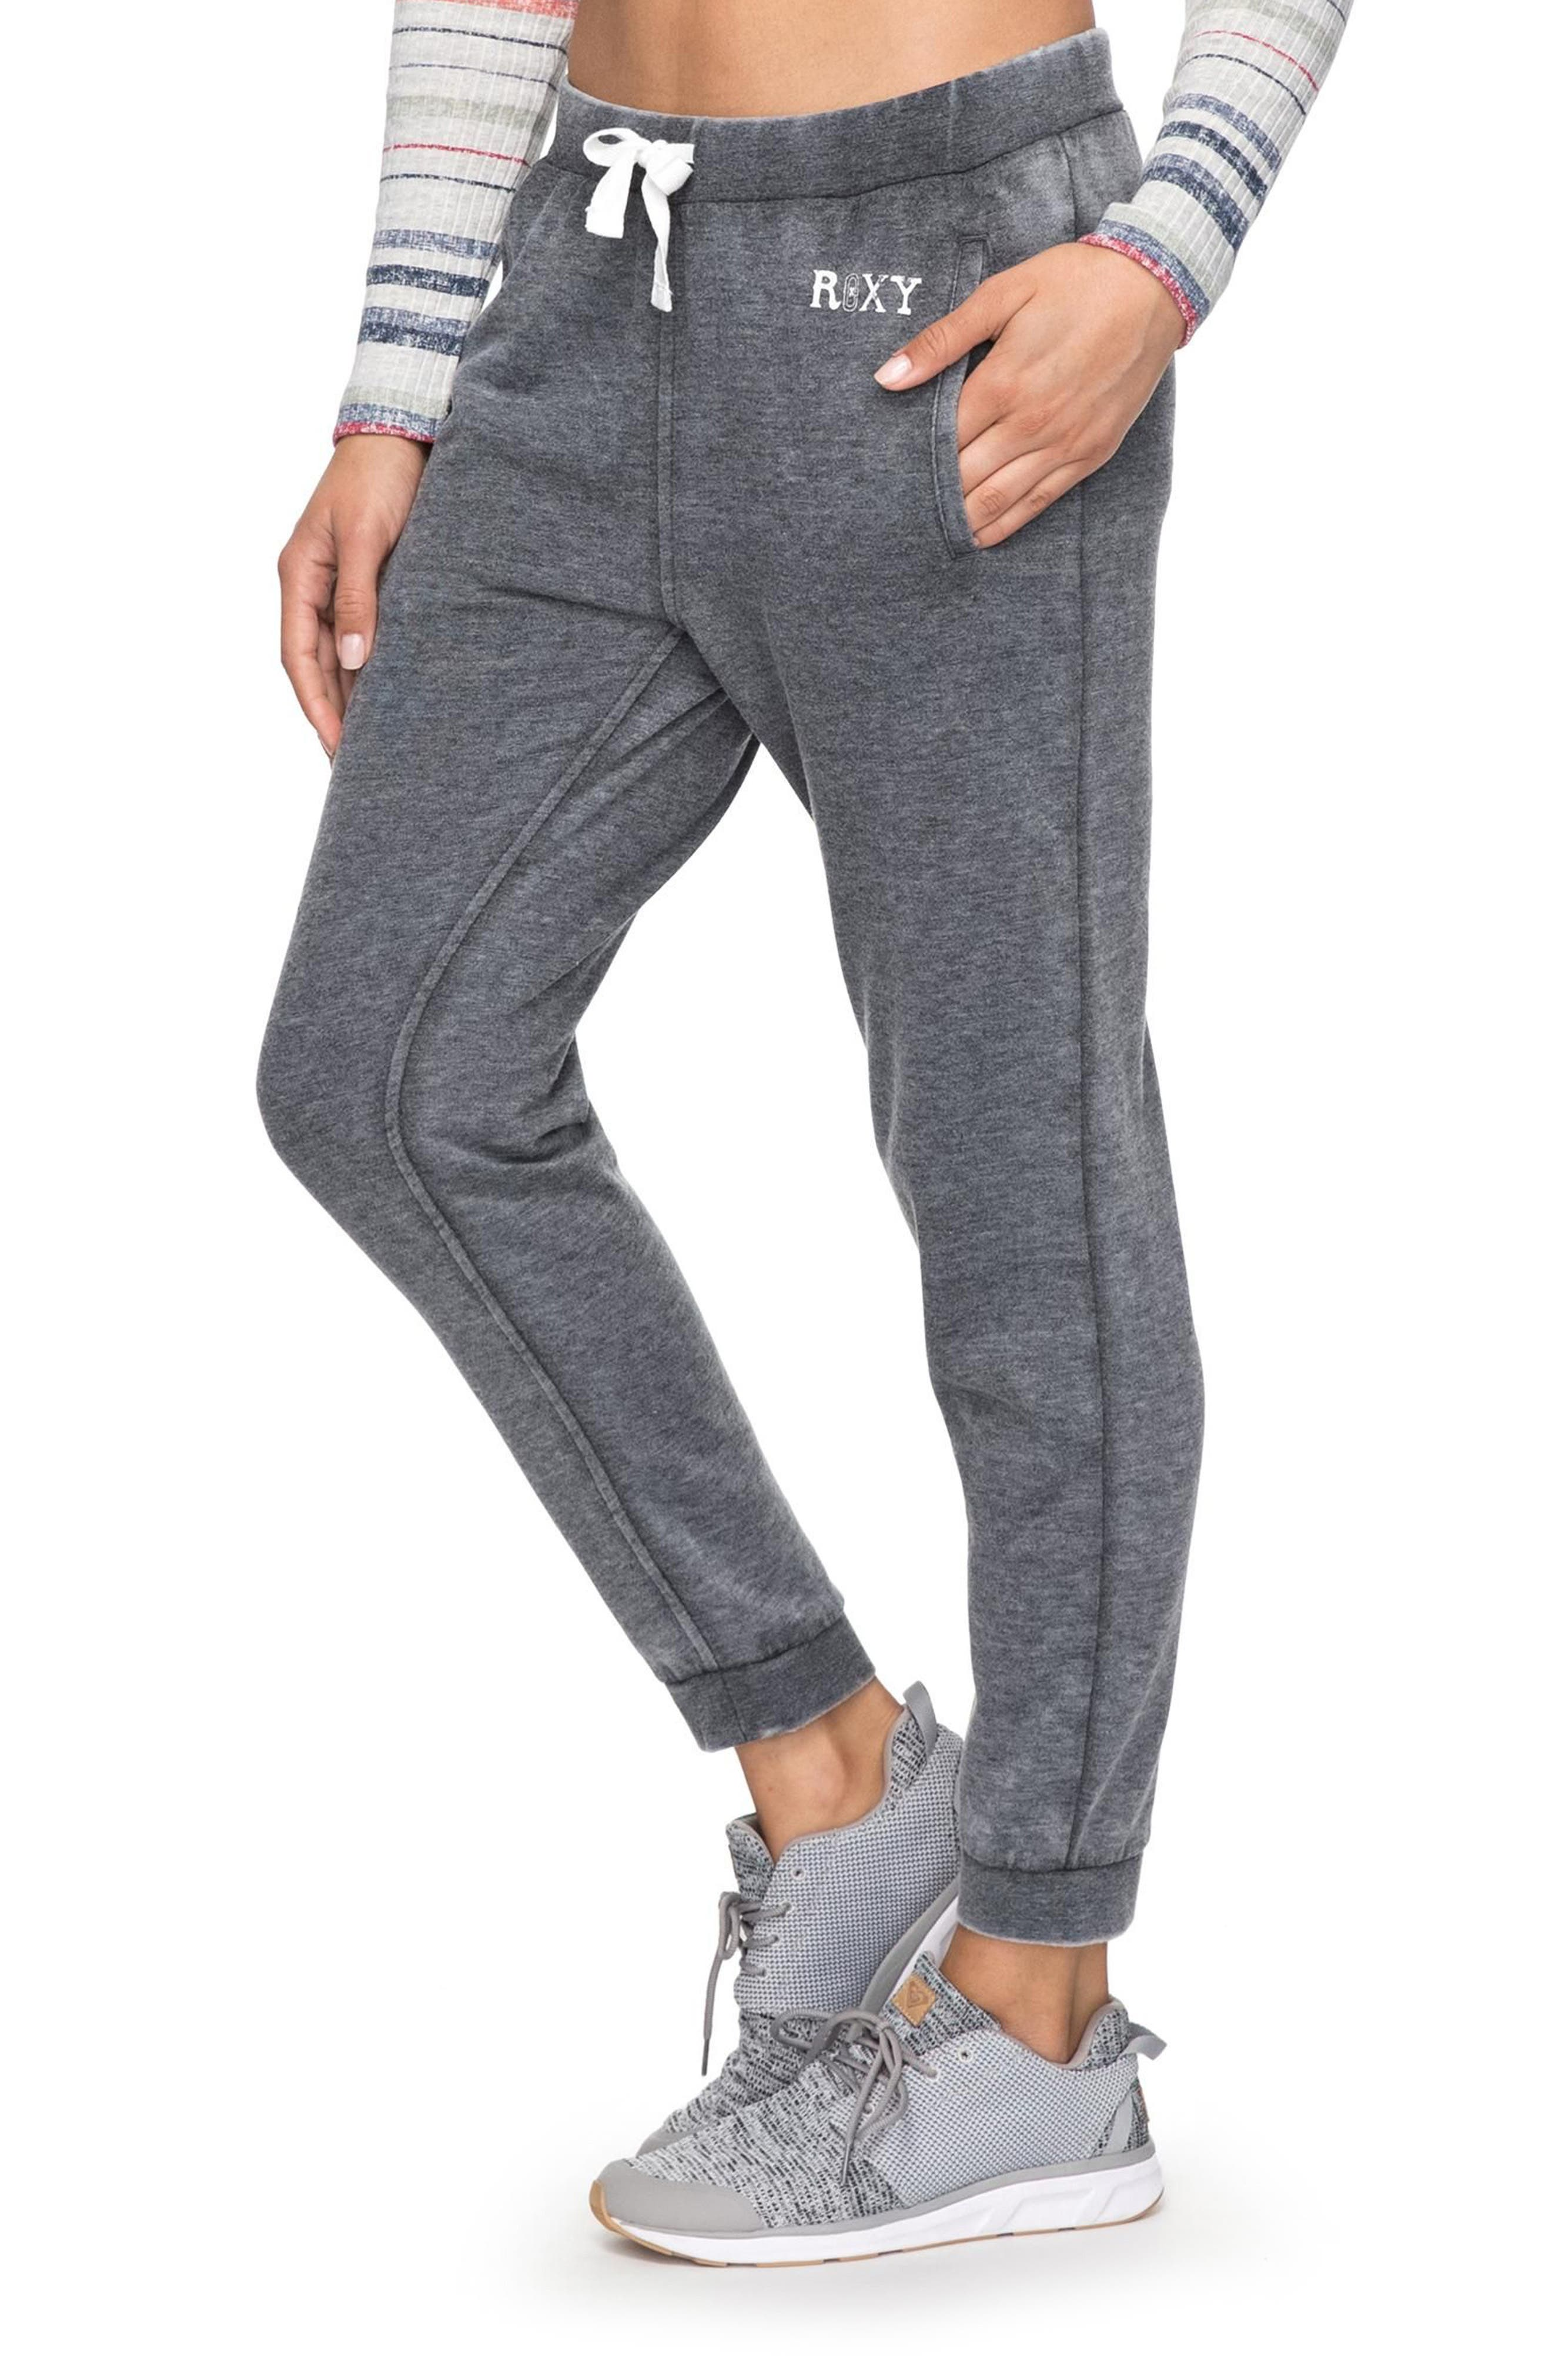 Groovy Song Tidewall Jogger Pants,                             Alternate thumbnail 3, color,                             Anthracite